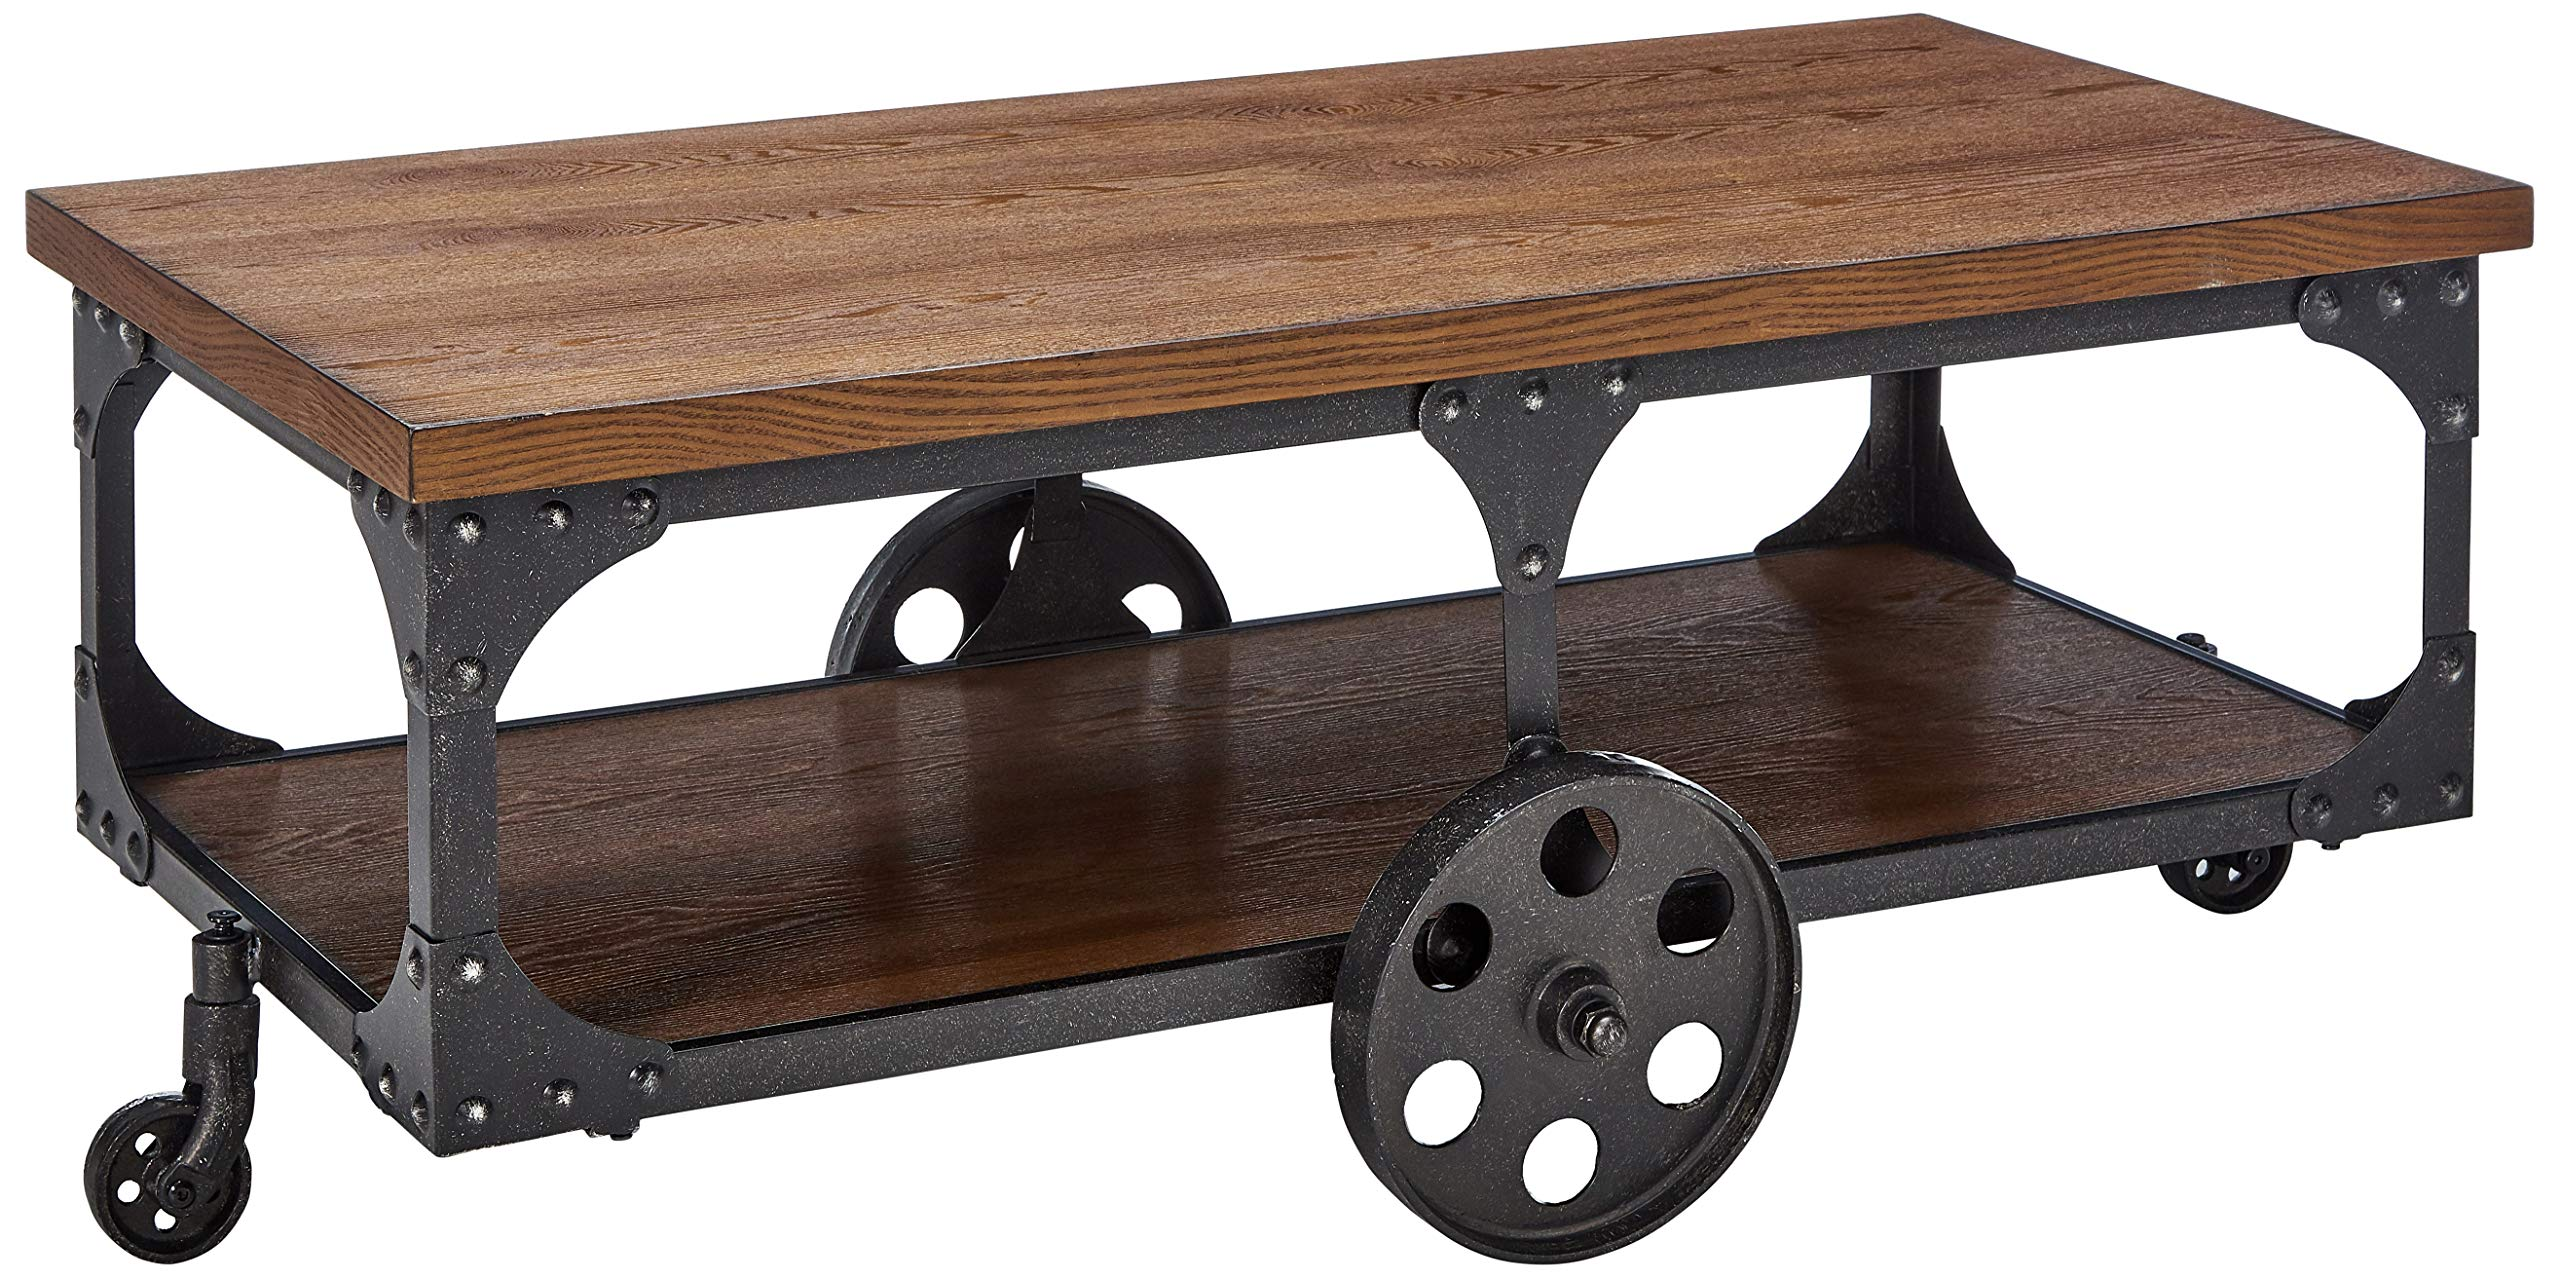 Coaster Home Furnishings Coffee Table with Casters Rustic Brown by Coaster Home Furnishings